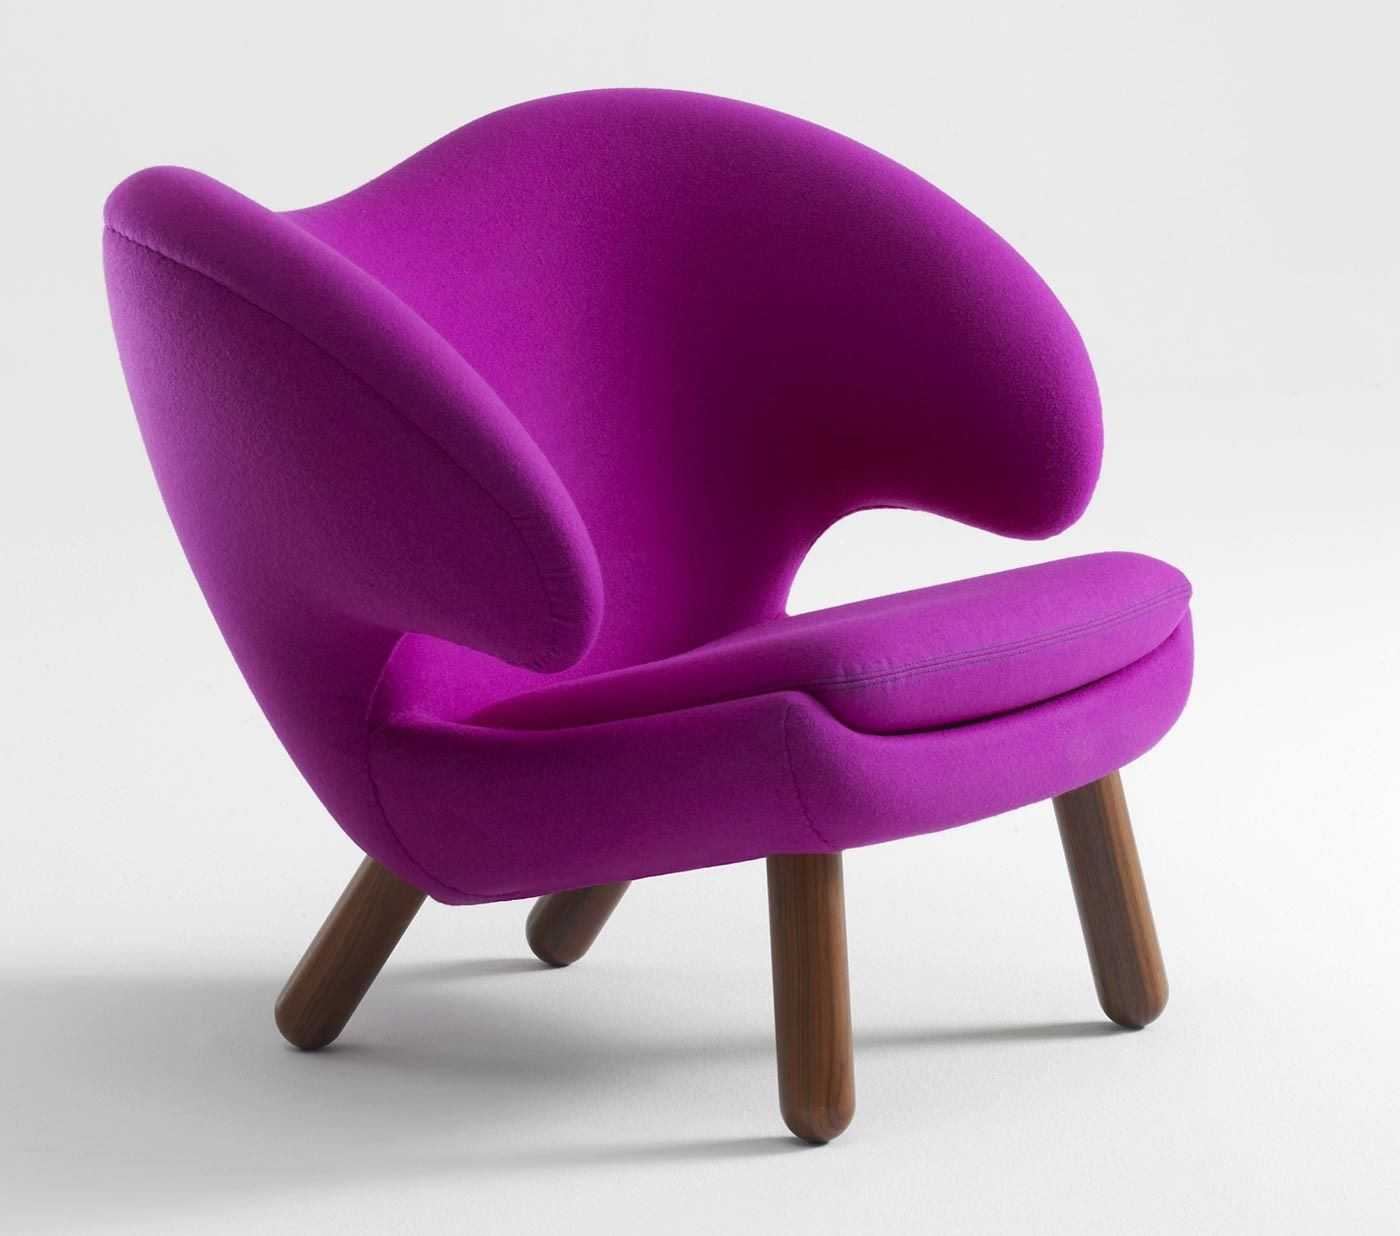 Finn Juhl Pelican chair - insanely lovely in too many colors...